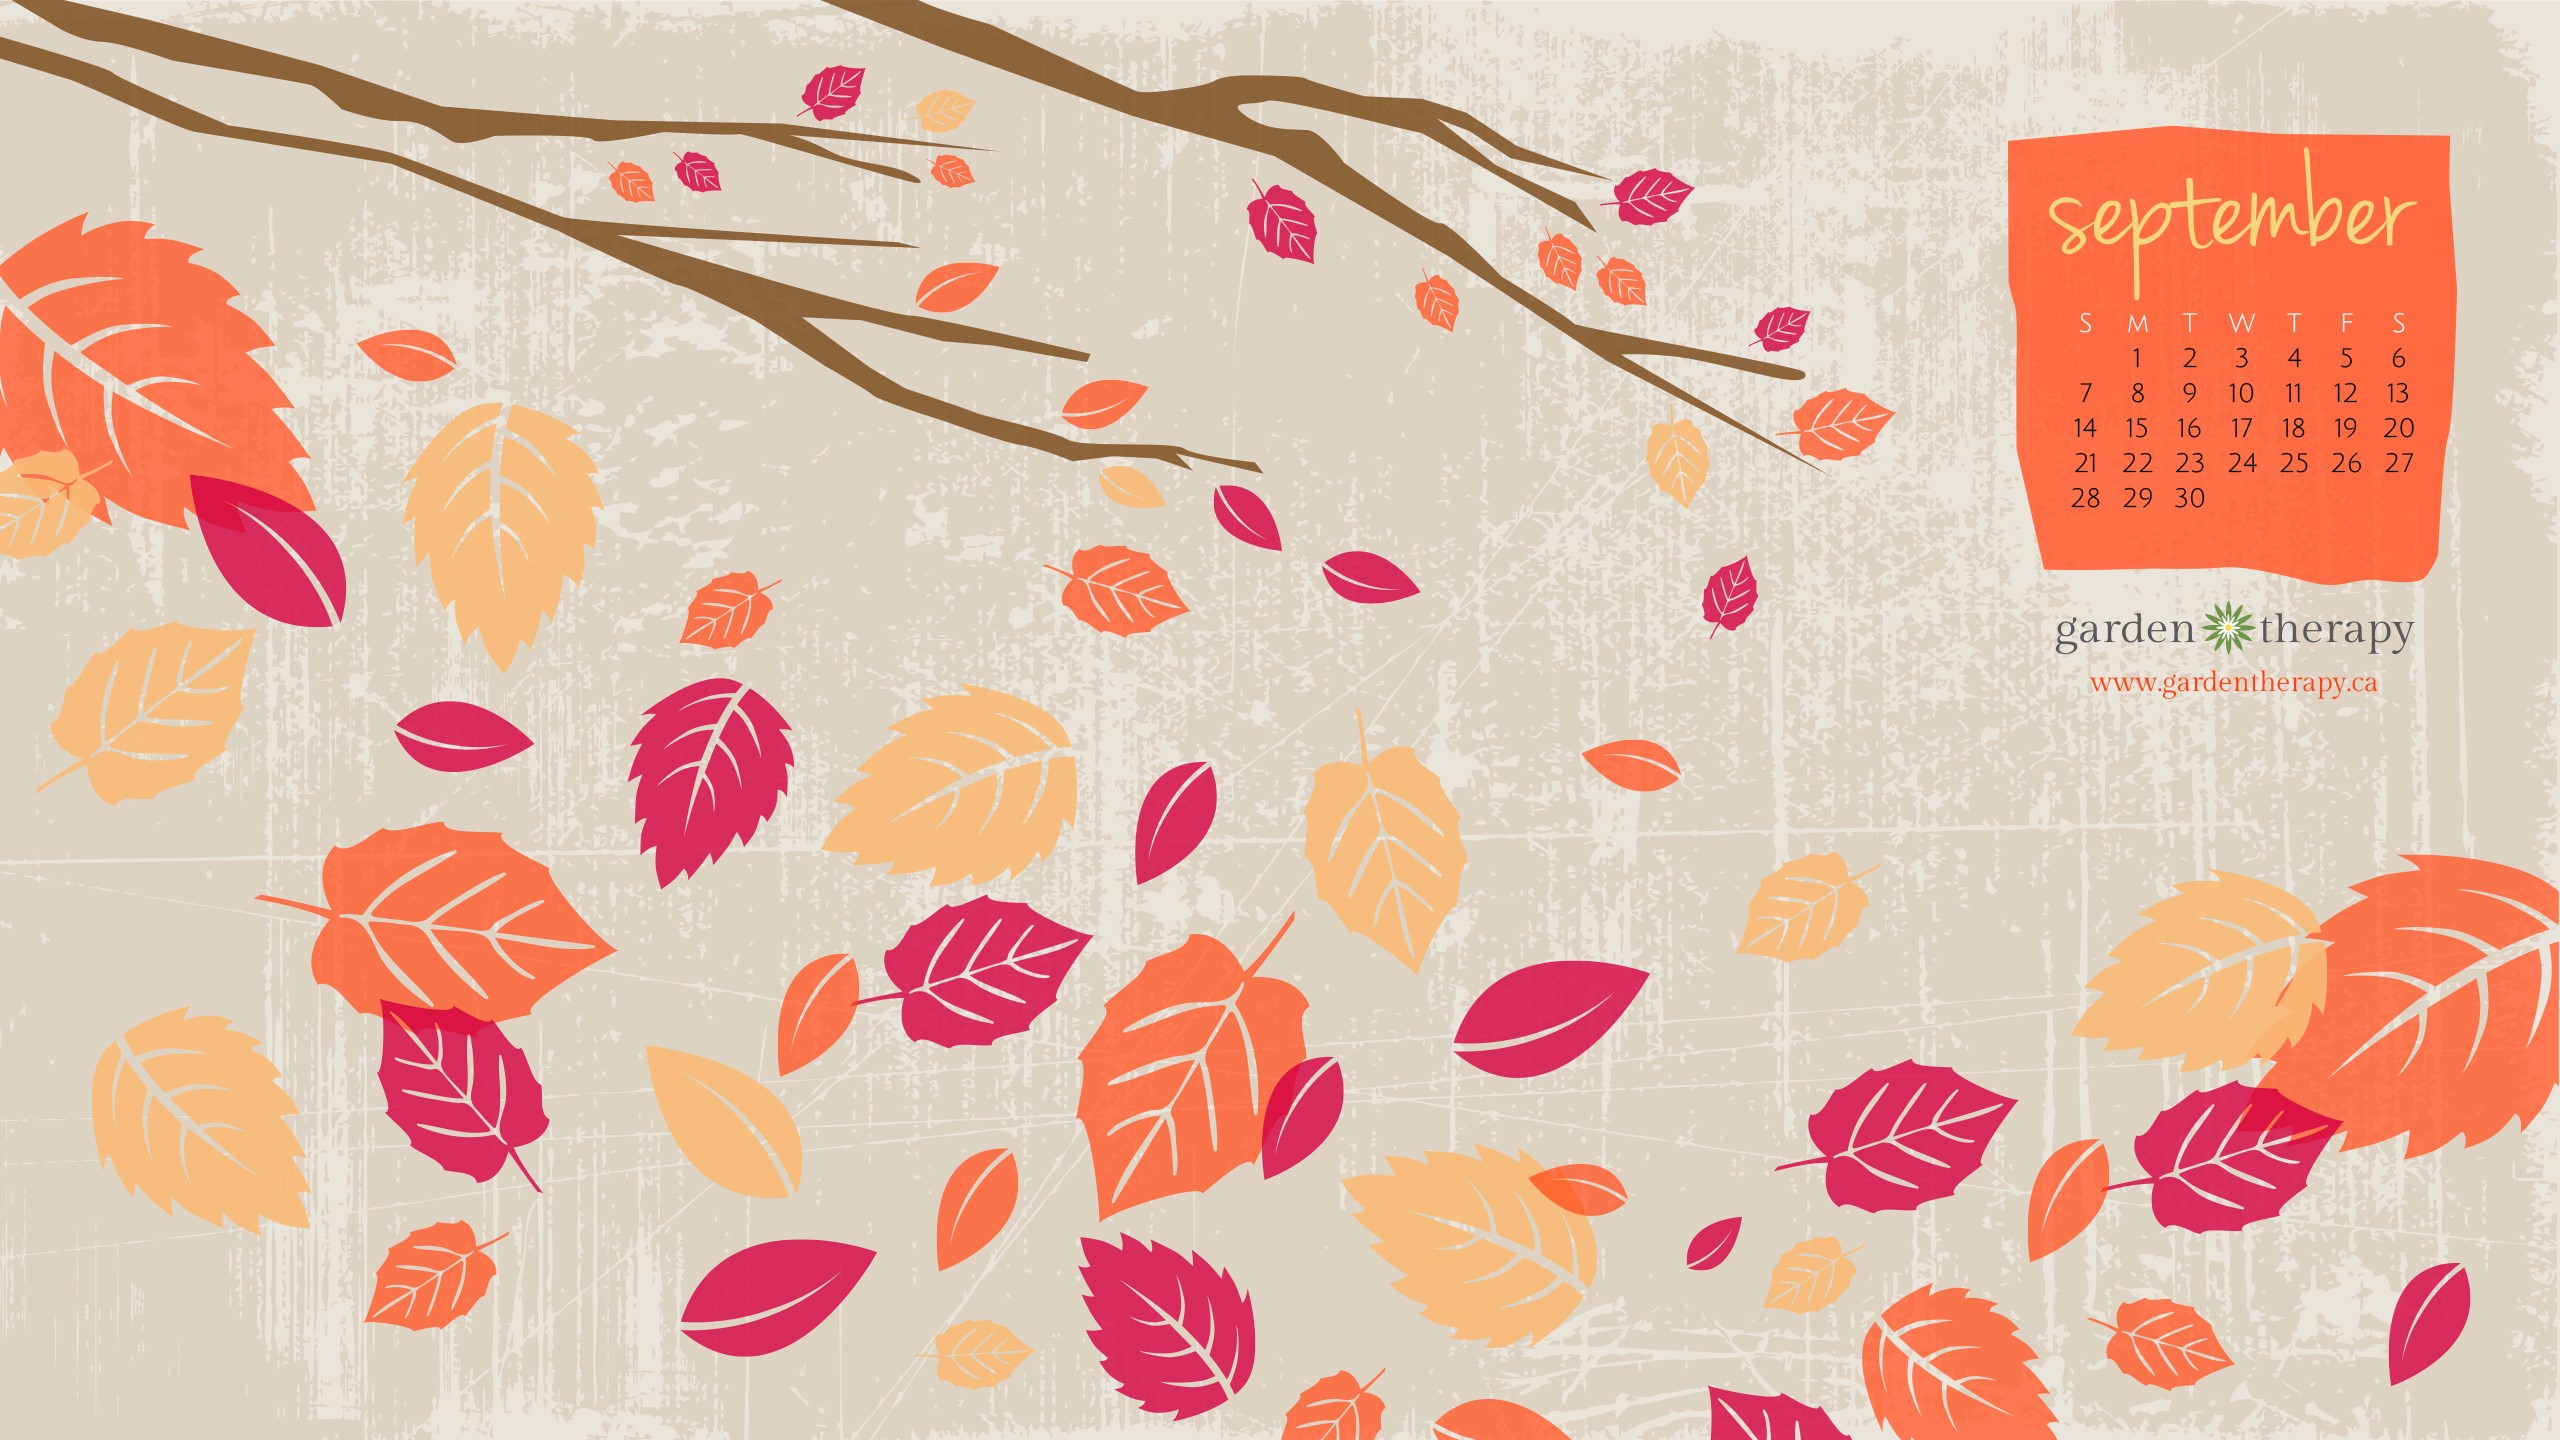 Free Calendar Wallpaper September : Falling for the september desktop calendar garden therapy